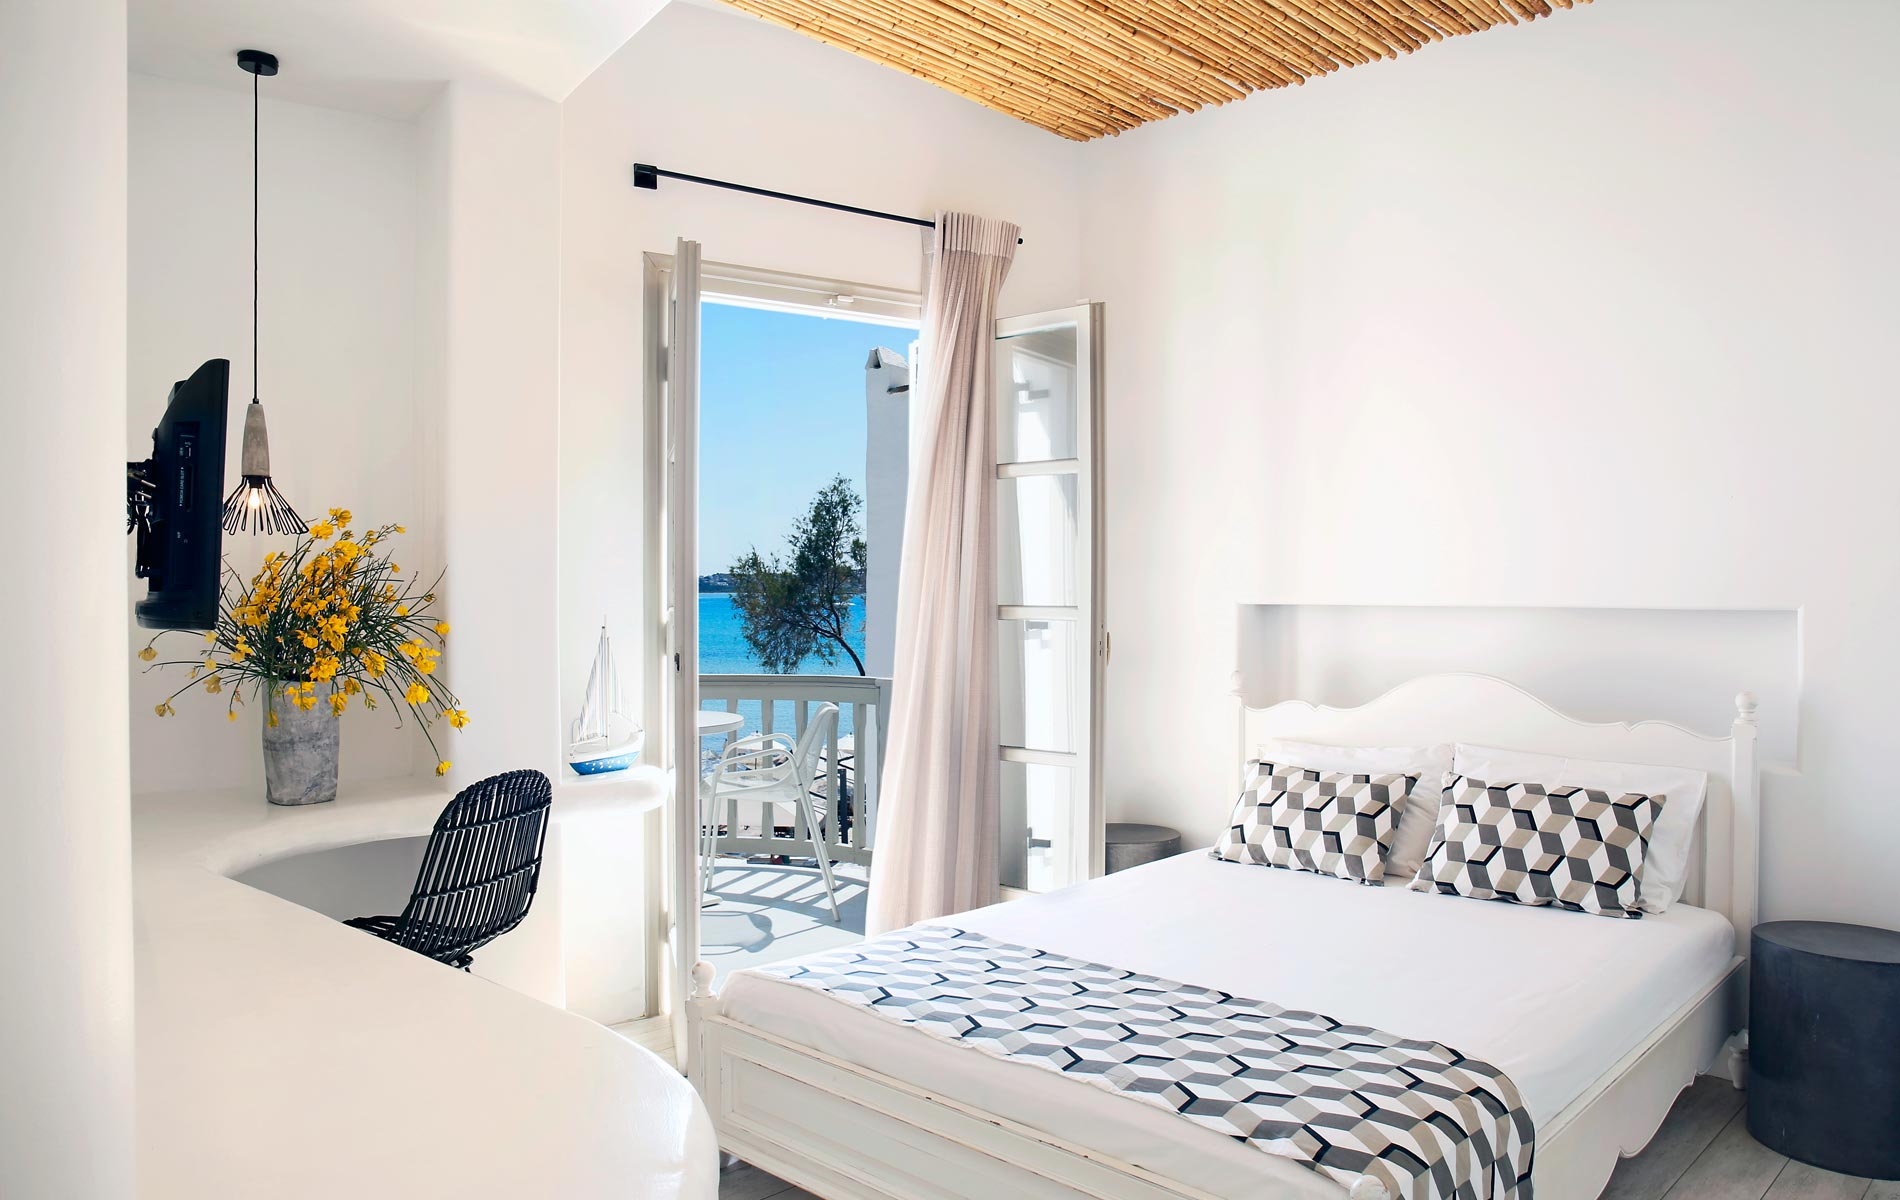 Studios-Thomais-Naxos-Greece-Room-5e